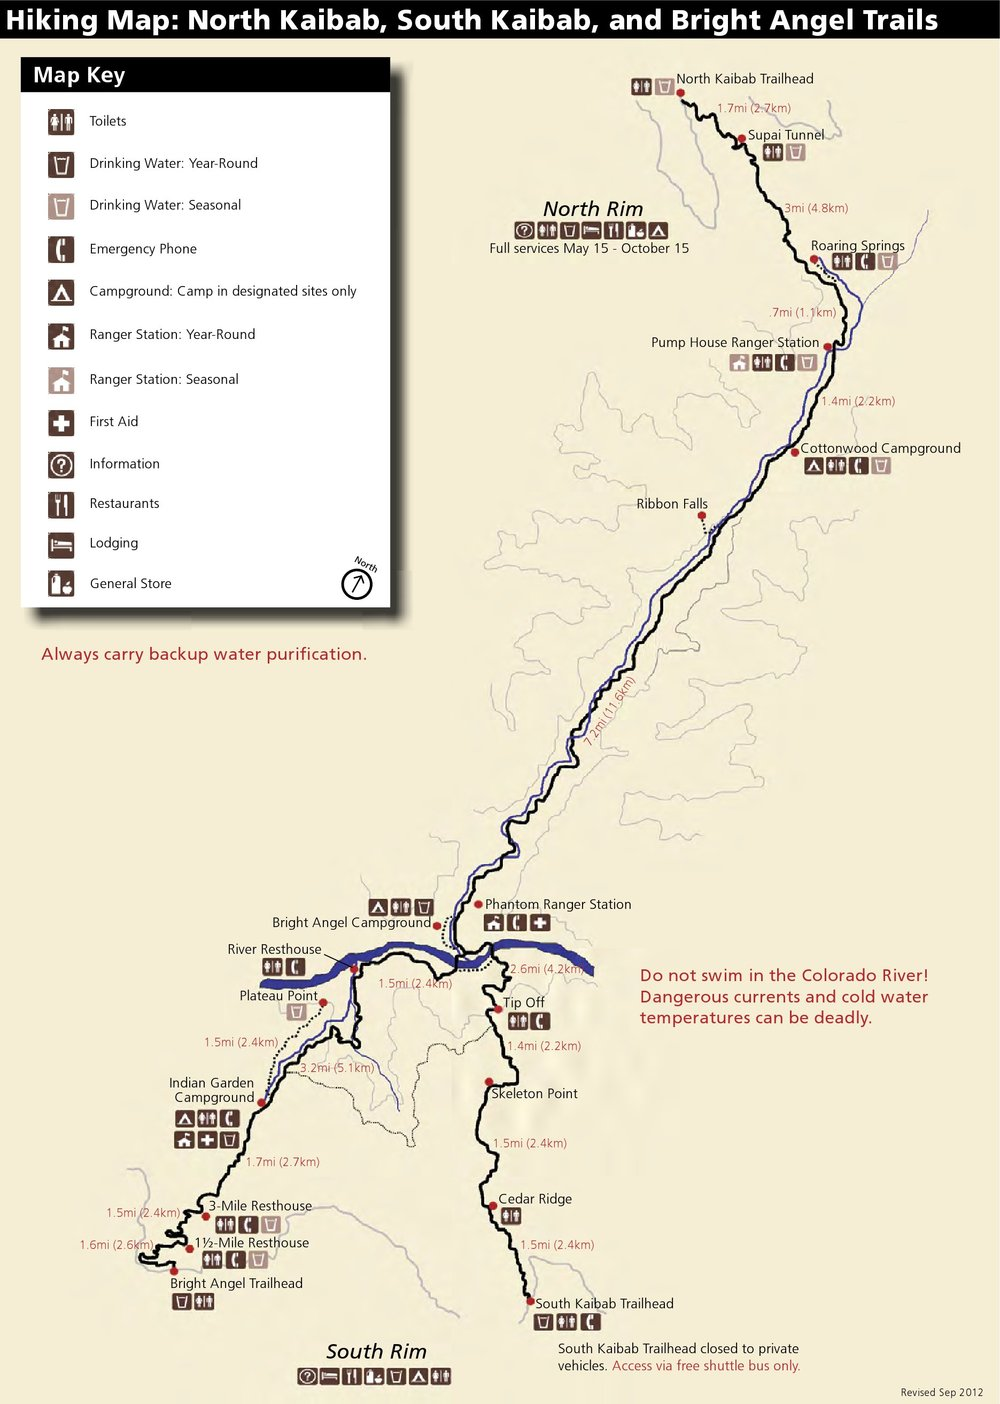 NPS_grand-canyon-hiking-map.jpg